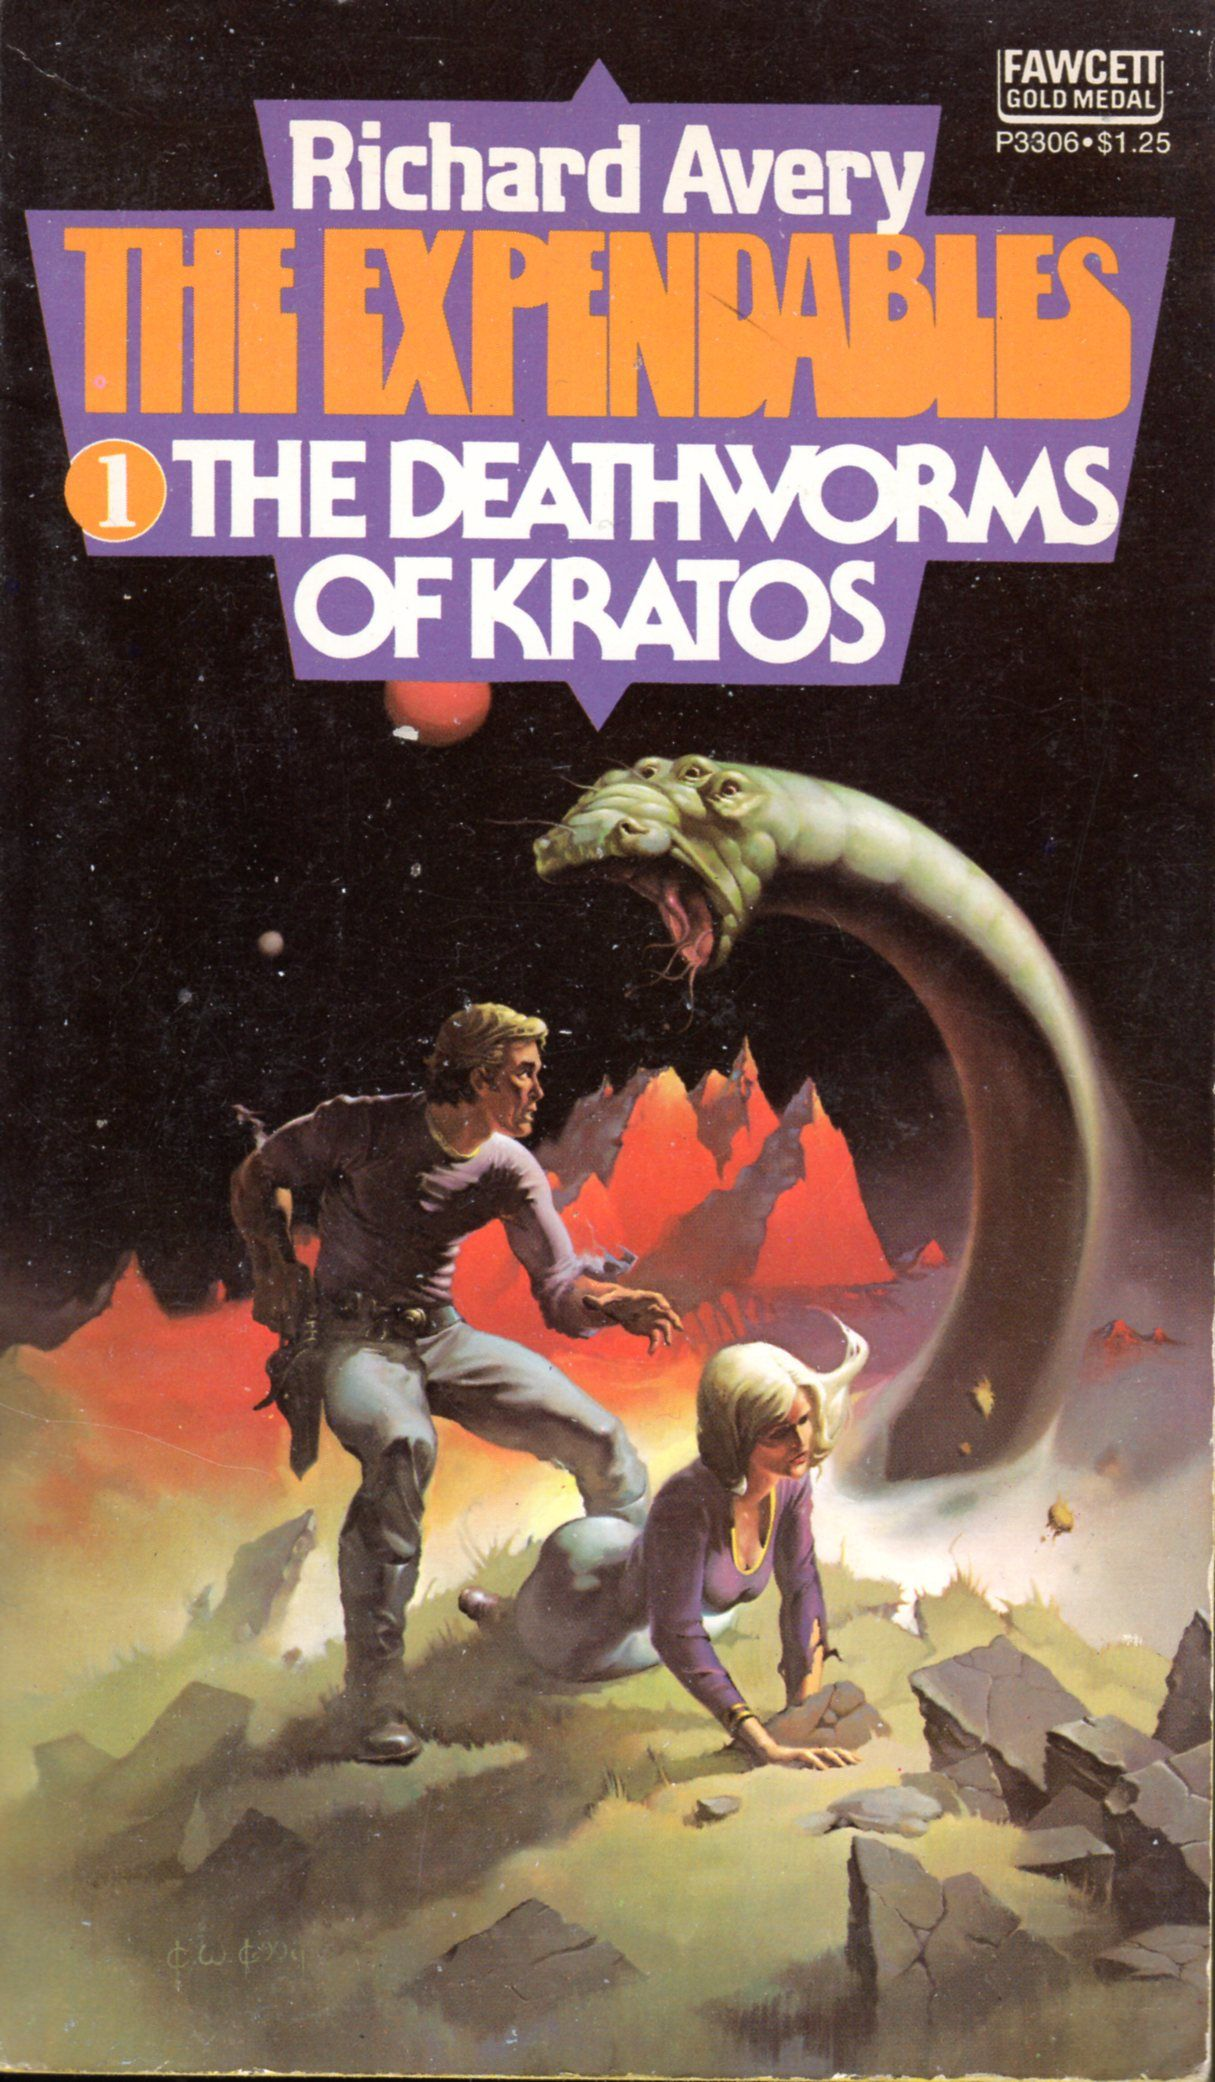 The Expendables #1: The Deathworms of Kratos - Richard Avery, cover ...